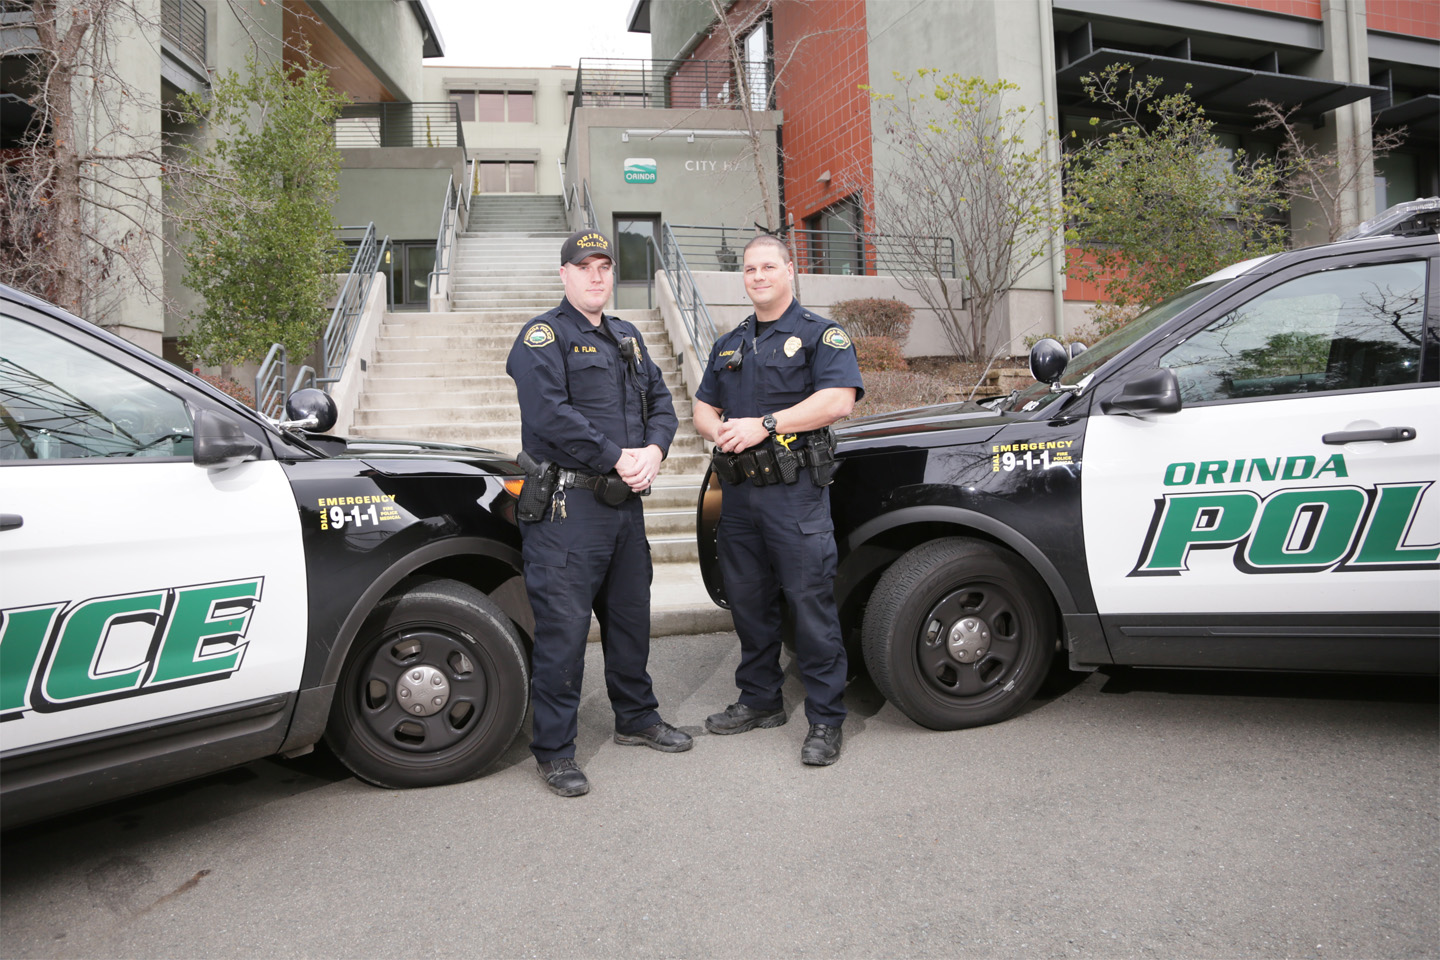 Photo of Orinda PD officers and vehicles